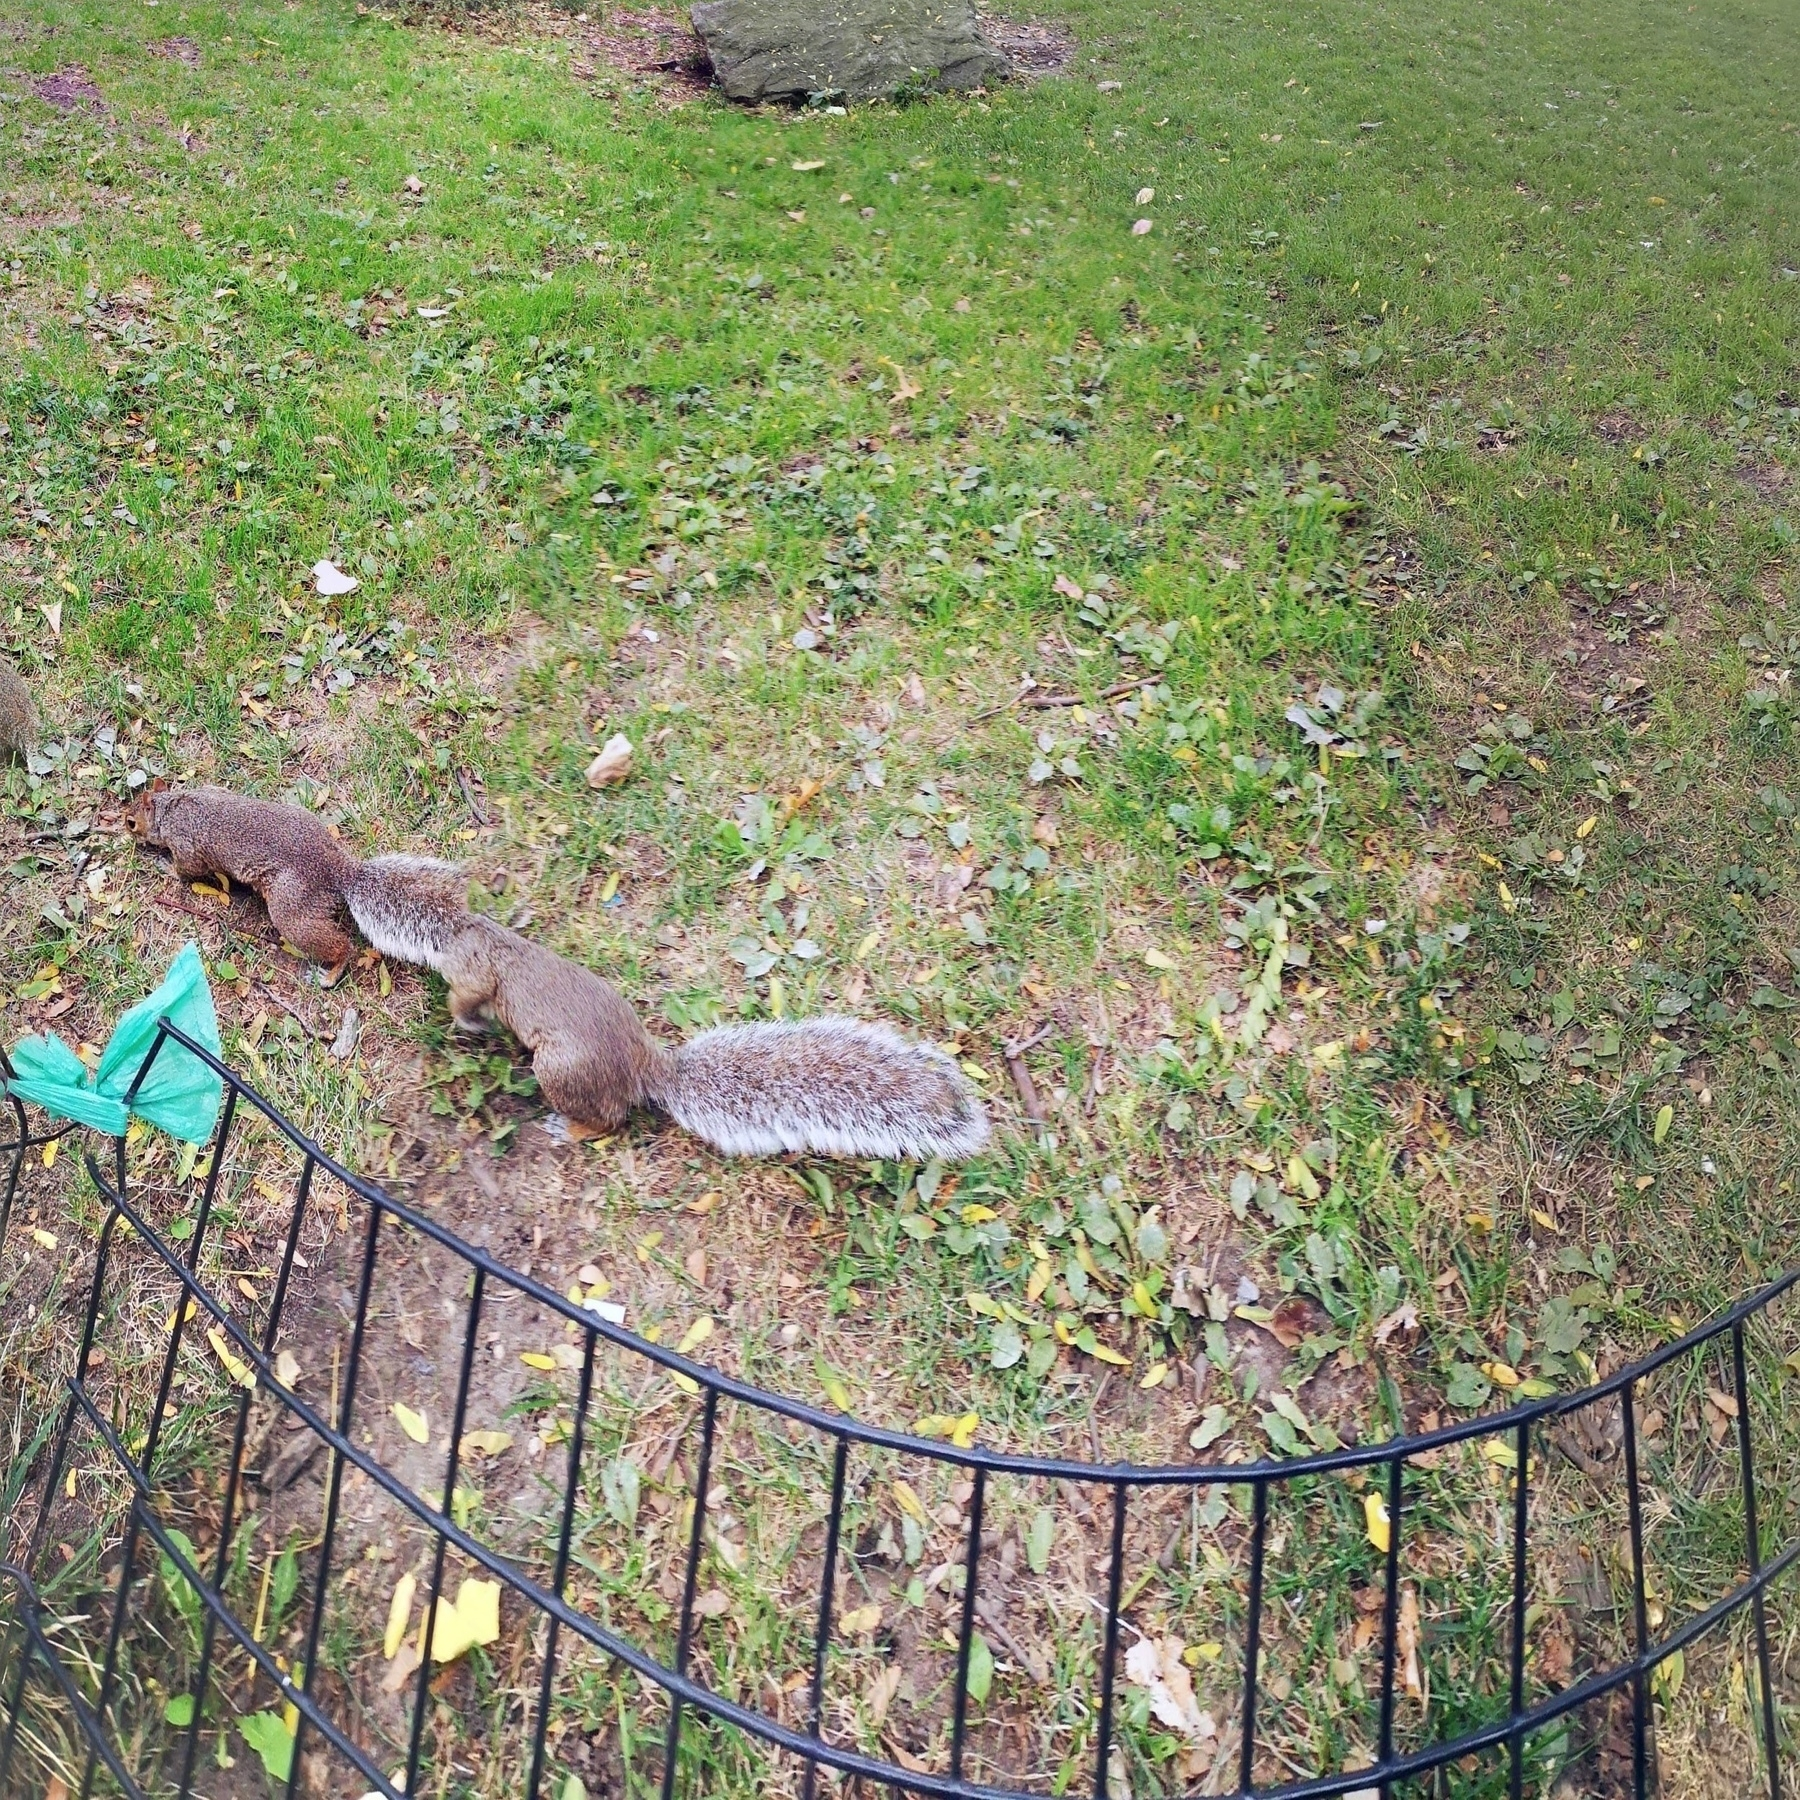 panorama pic of a moving squirrel creating a squirrel tube